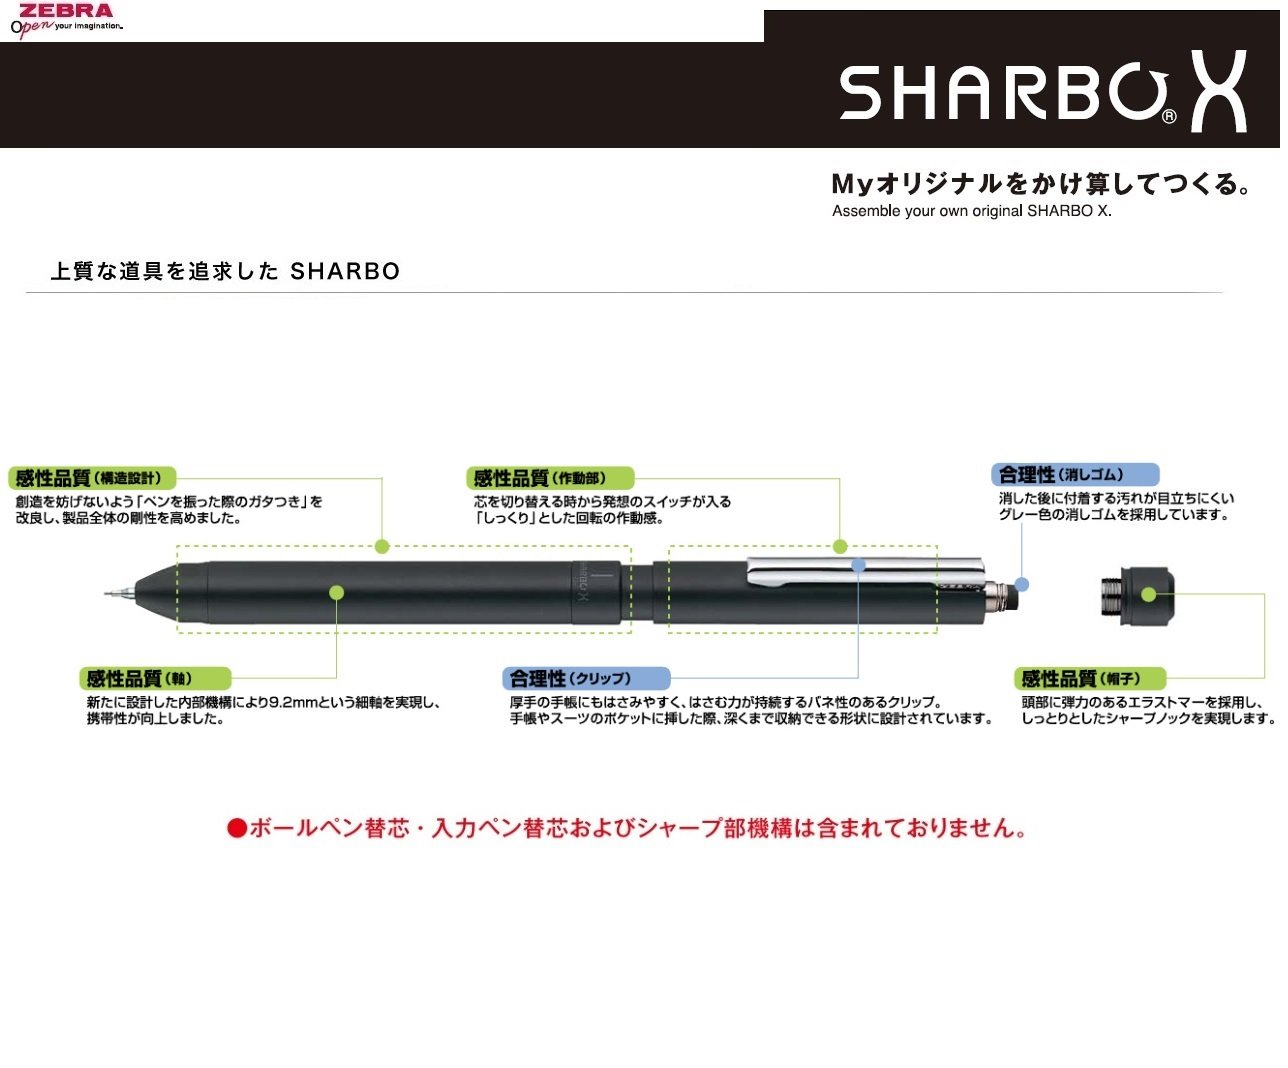 Zebra Sharbo X CL5 Leather-Textured Pen Body Component - Forest Green by Zebra (Image #3)